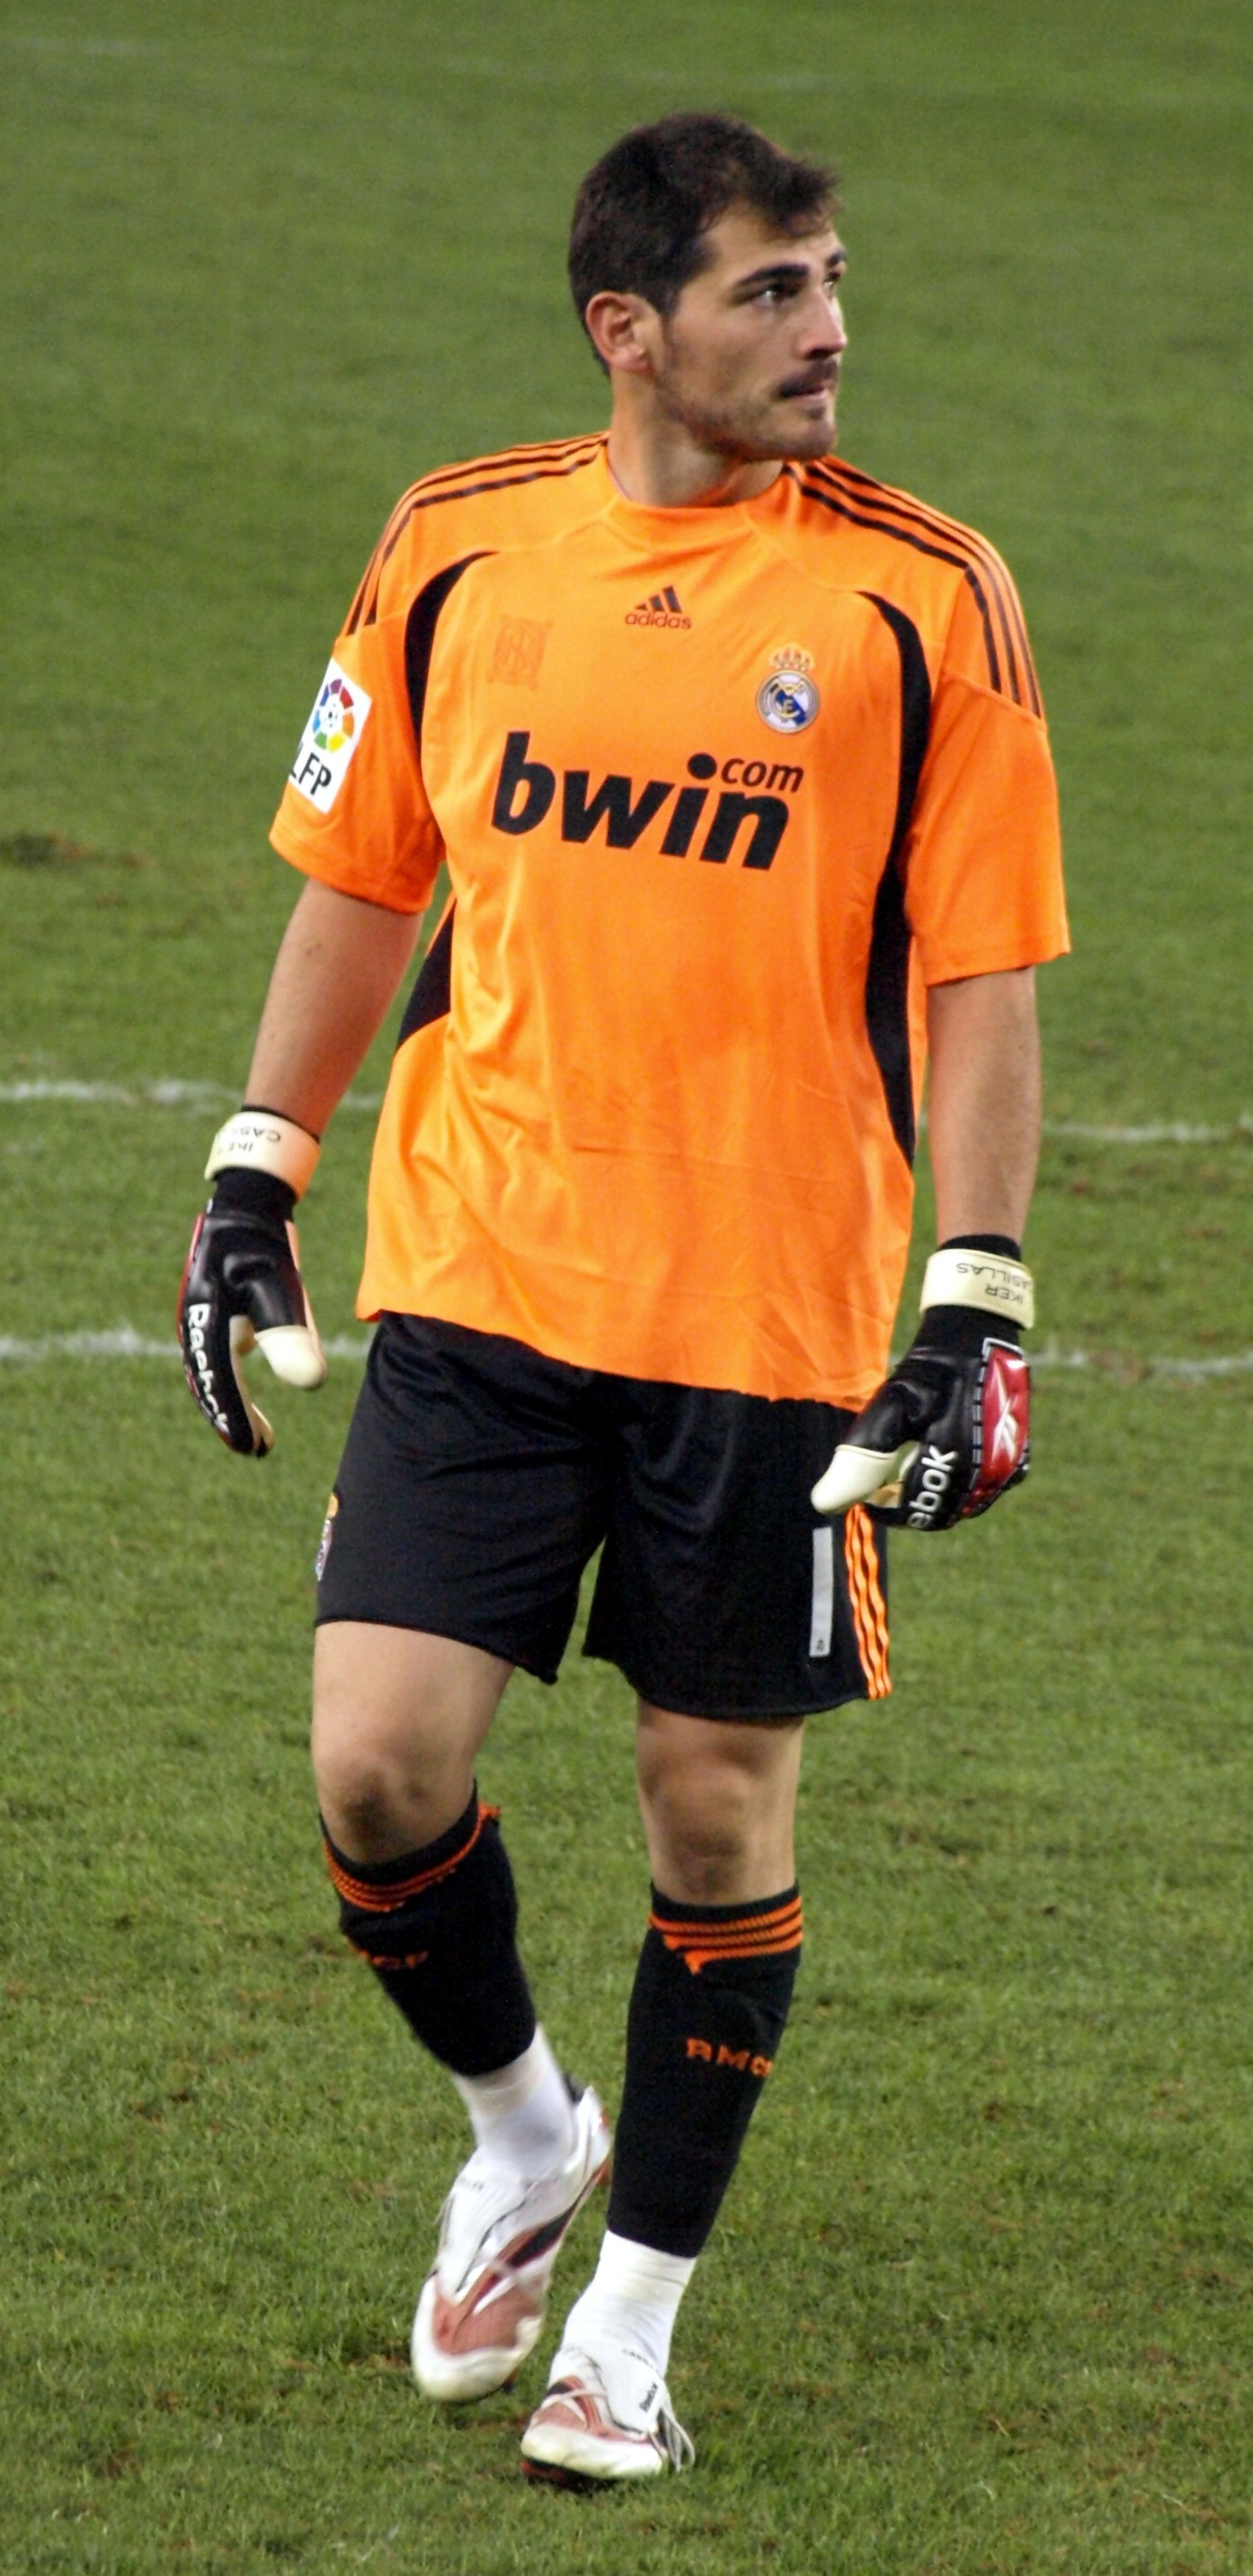 593e9bae298 1920x1200 Iker Casillas Real Madrid C.F. Full Screen HD Picture Gorgeous HD  Wallpapers